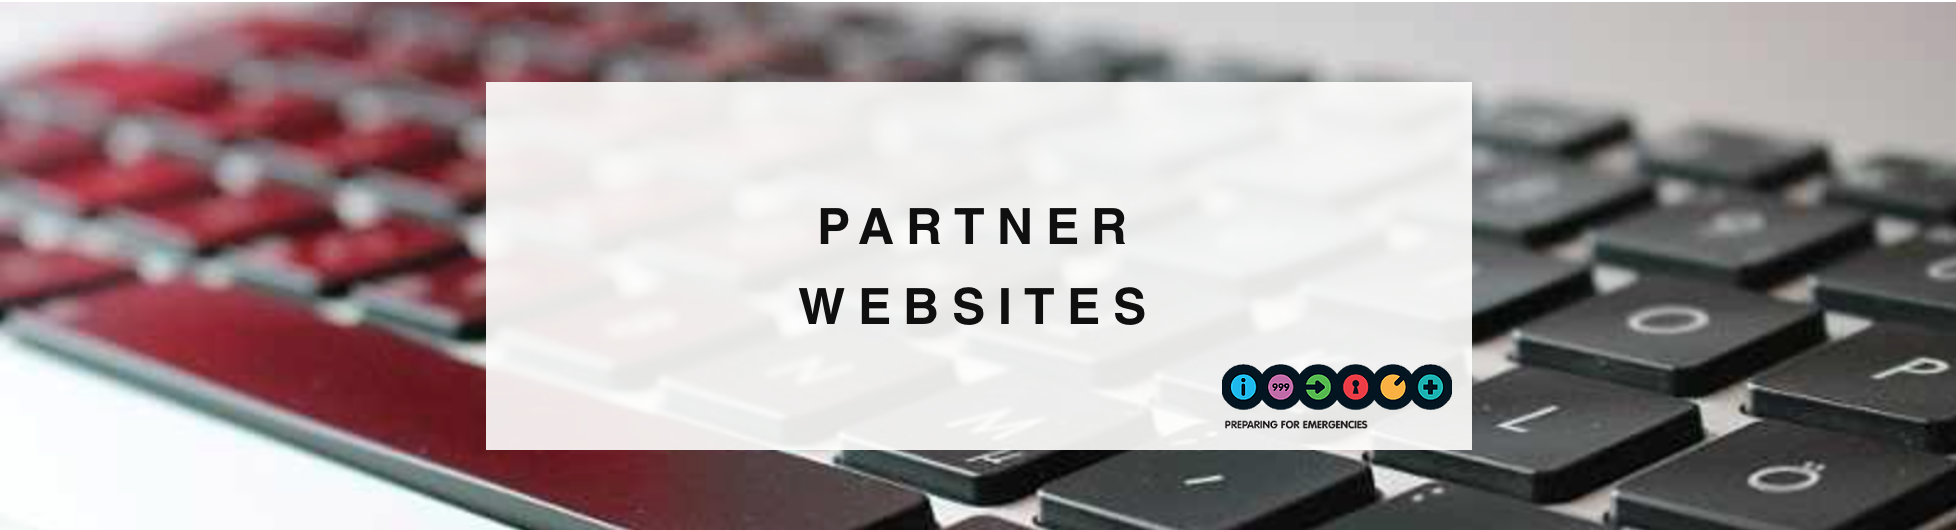 Partner websites